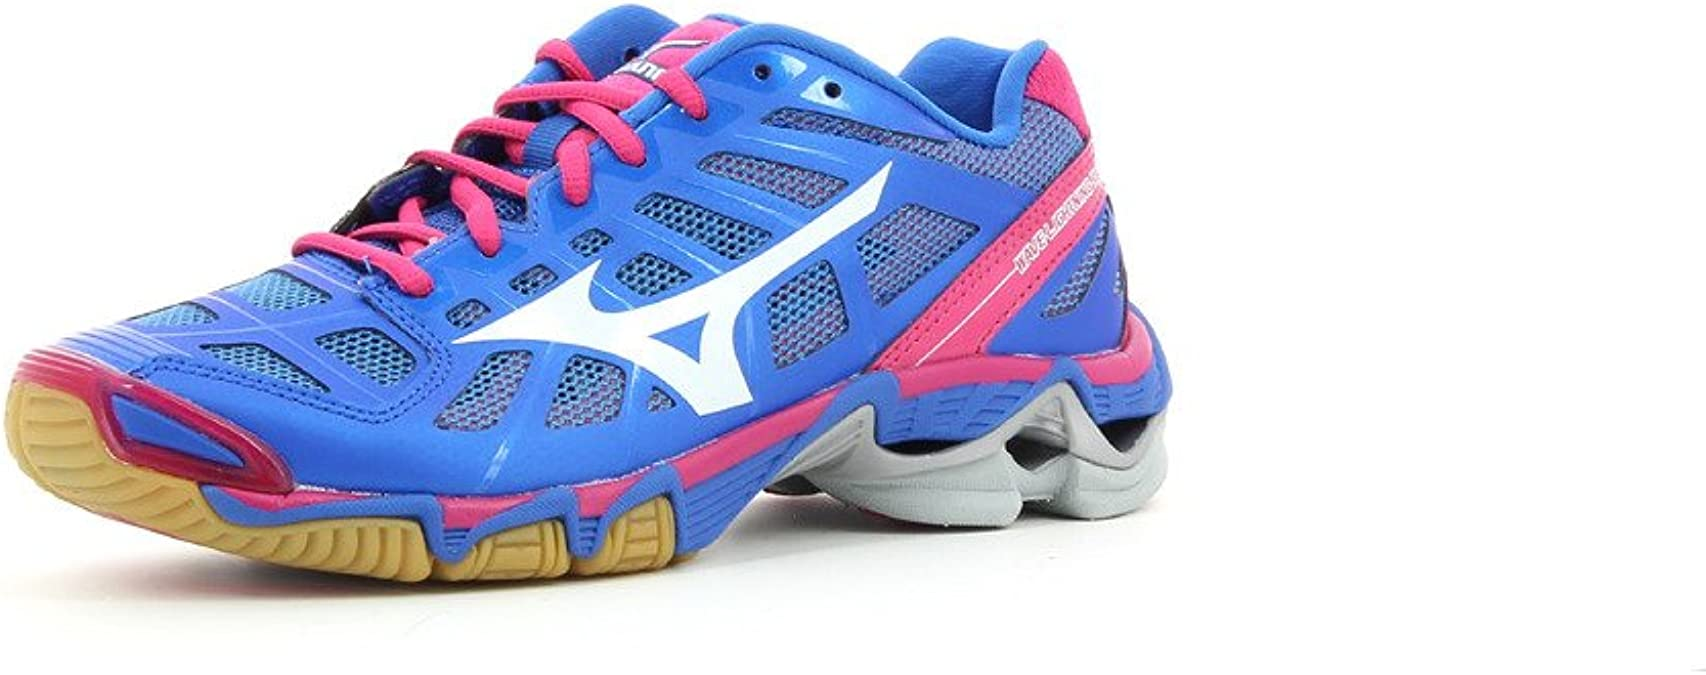 Mizuno Wave Lightning RX2 Chaussures de volleyball pour